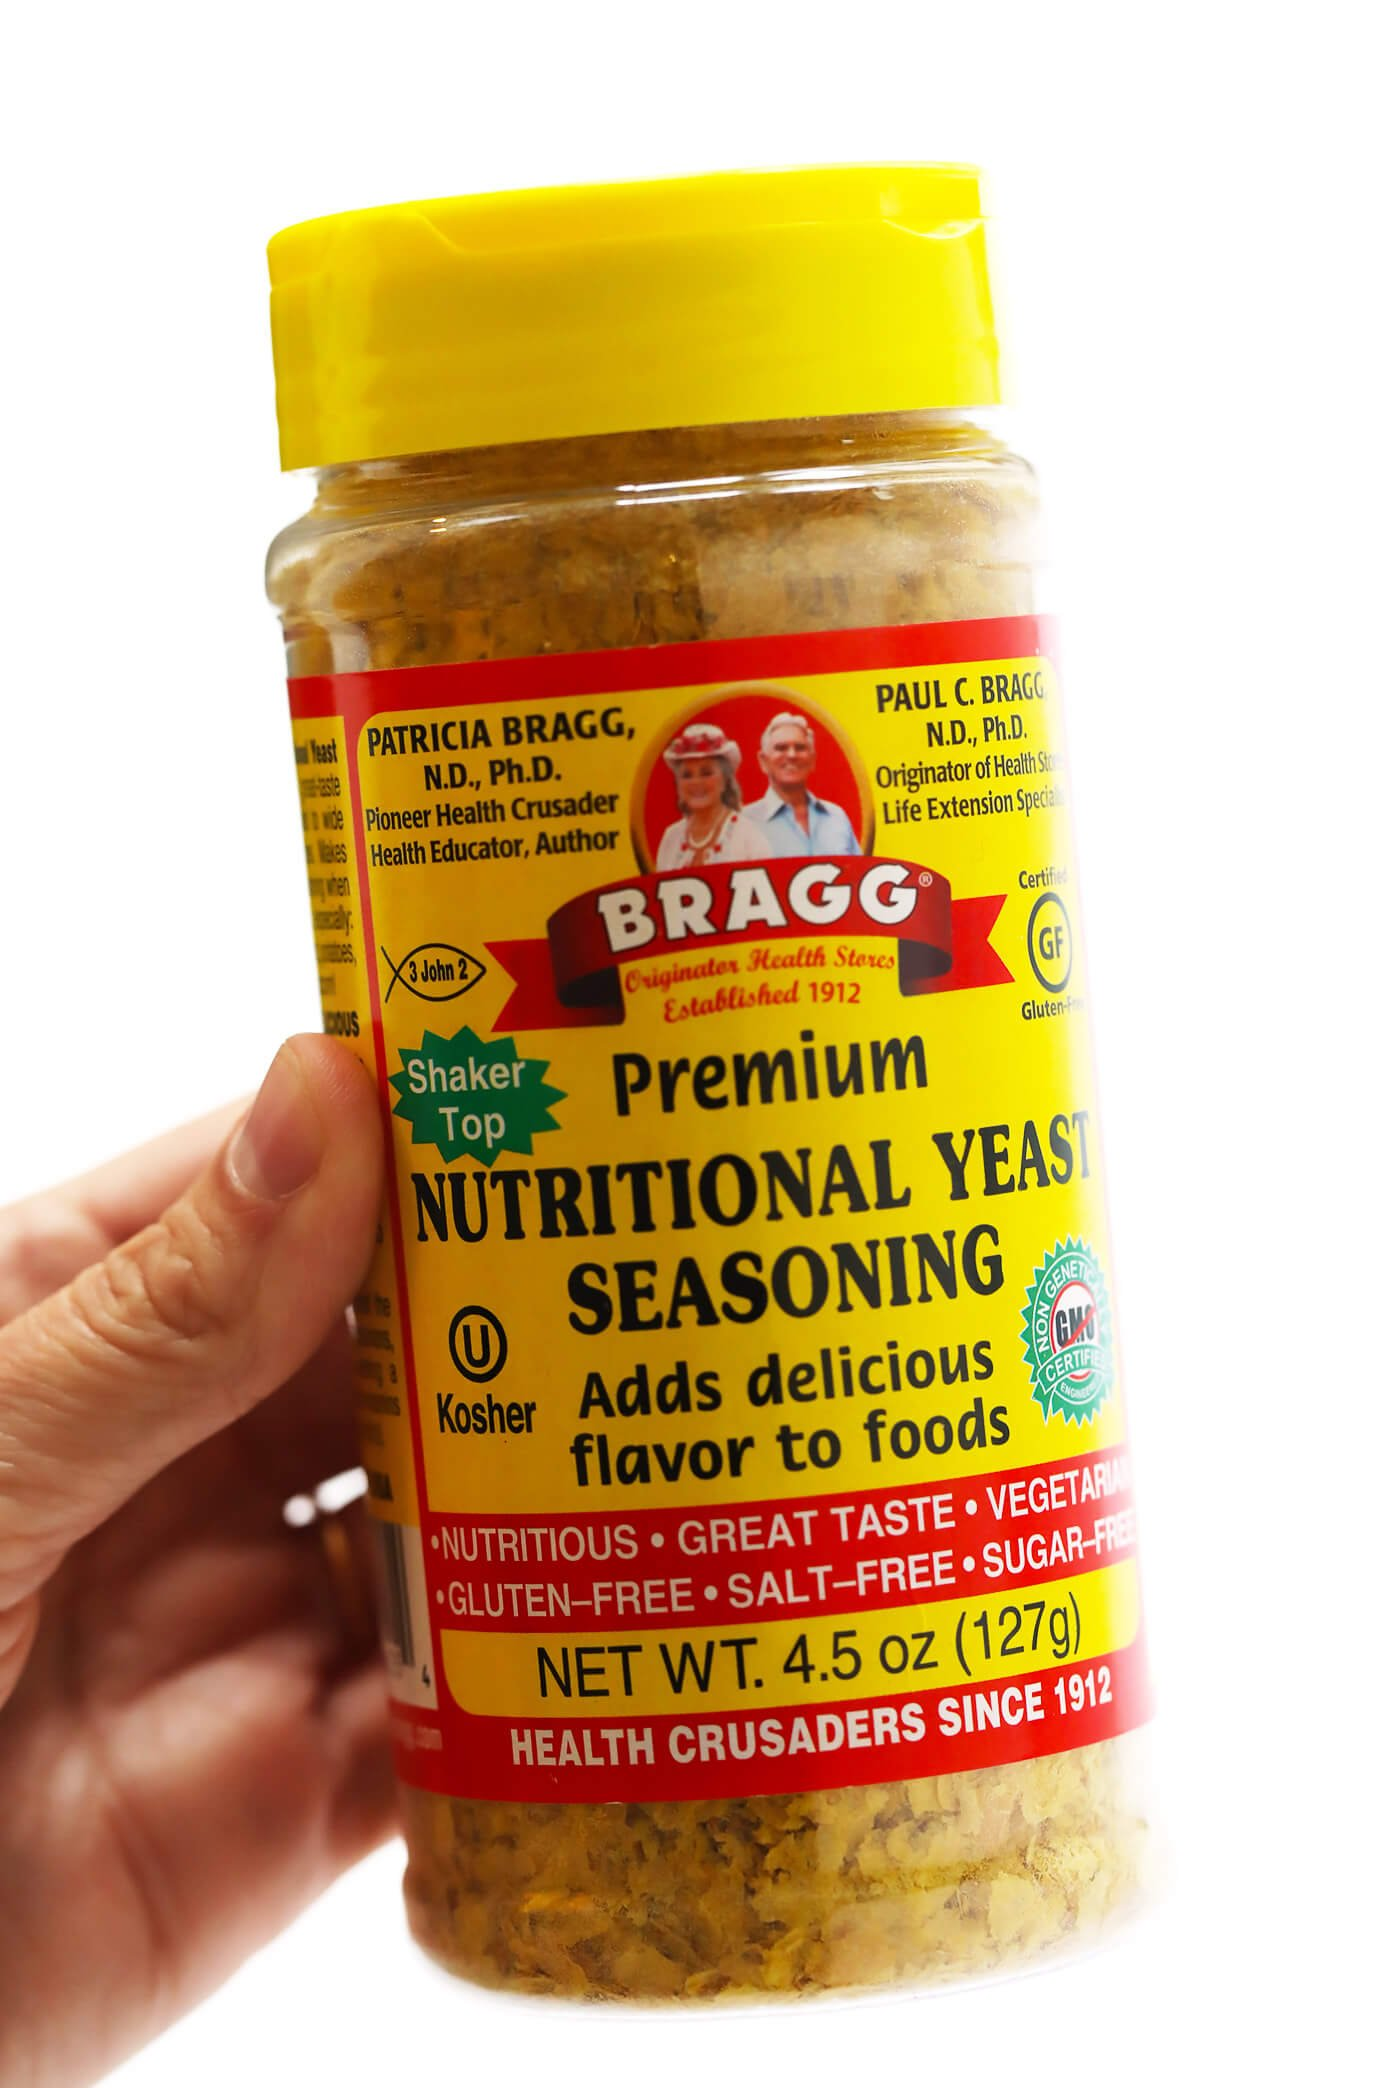 Bragg's Nutritional Yeast Seasoning